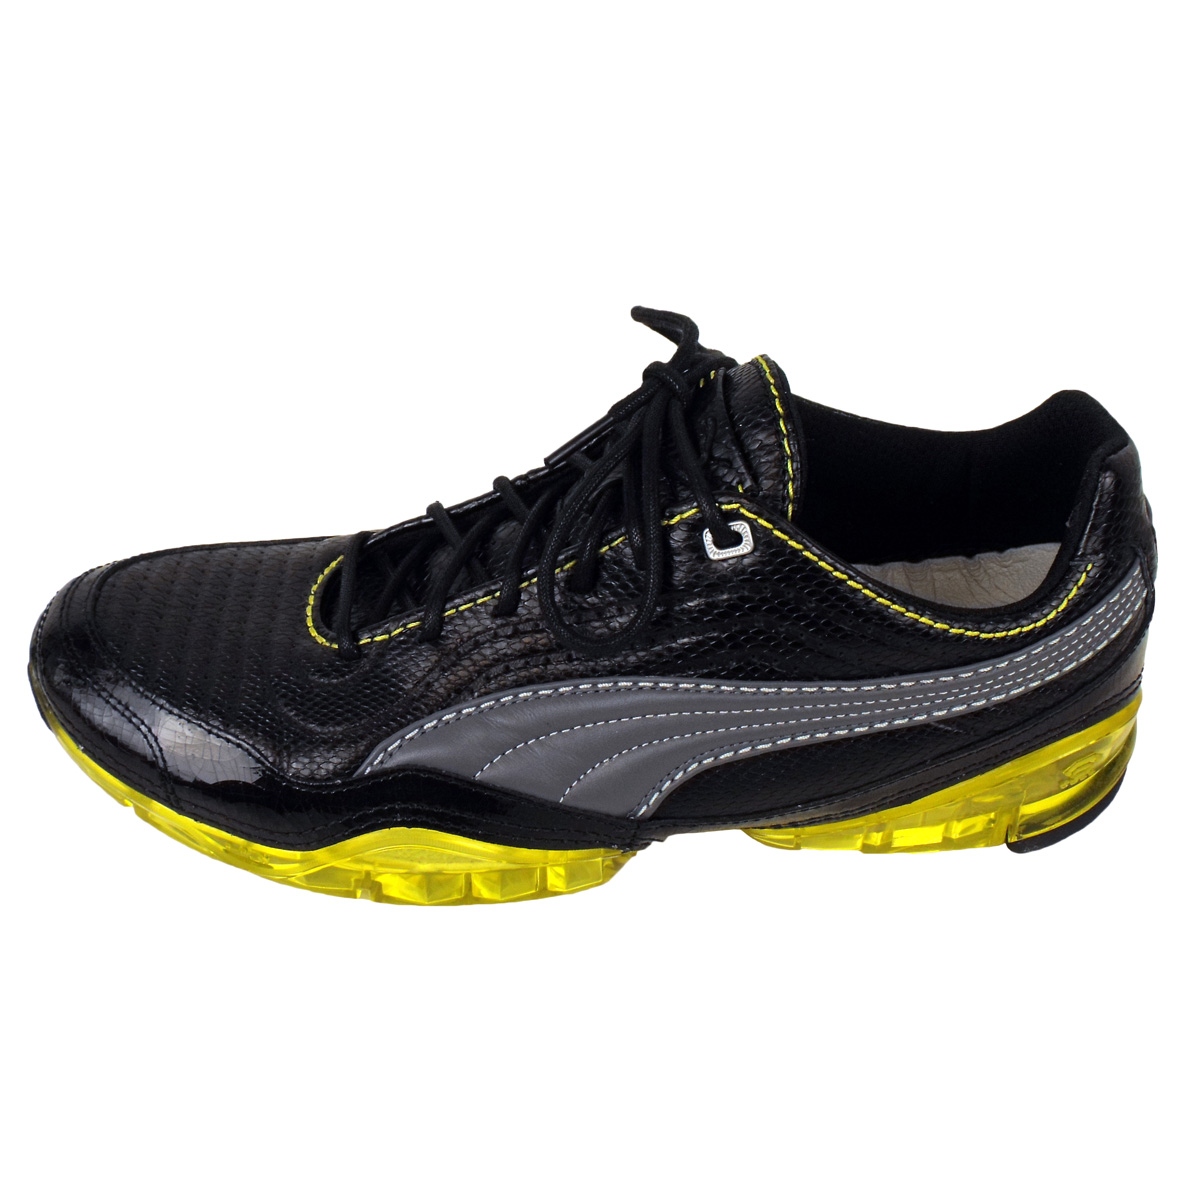 Puma Cell Running Shoes Uk